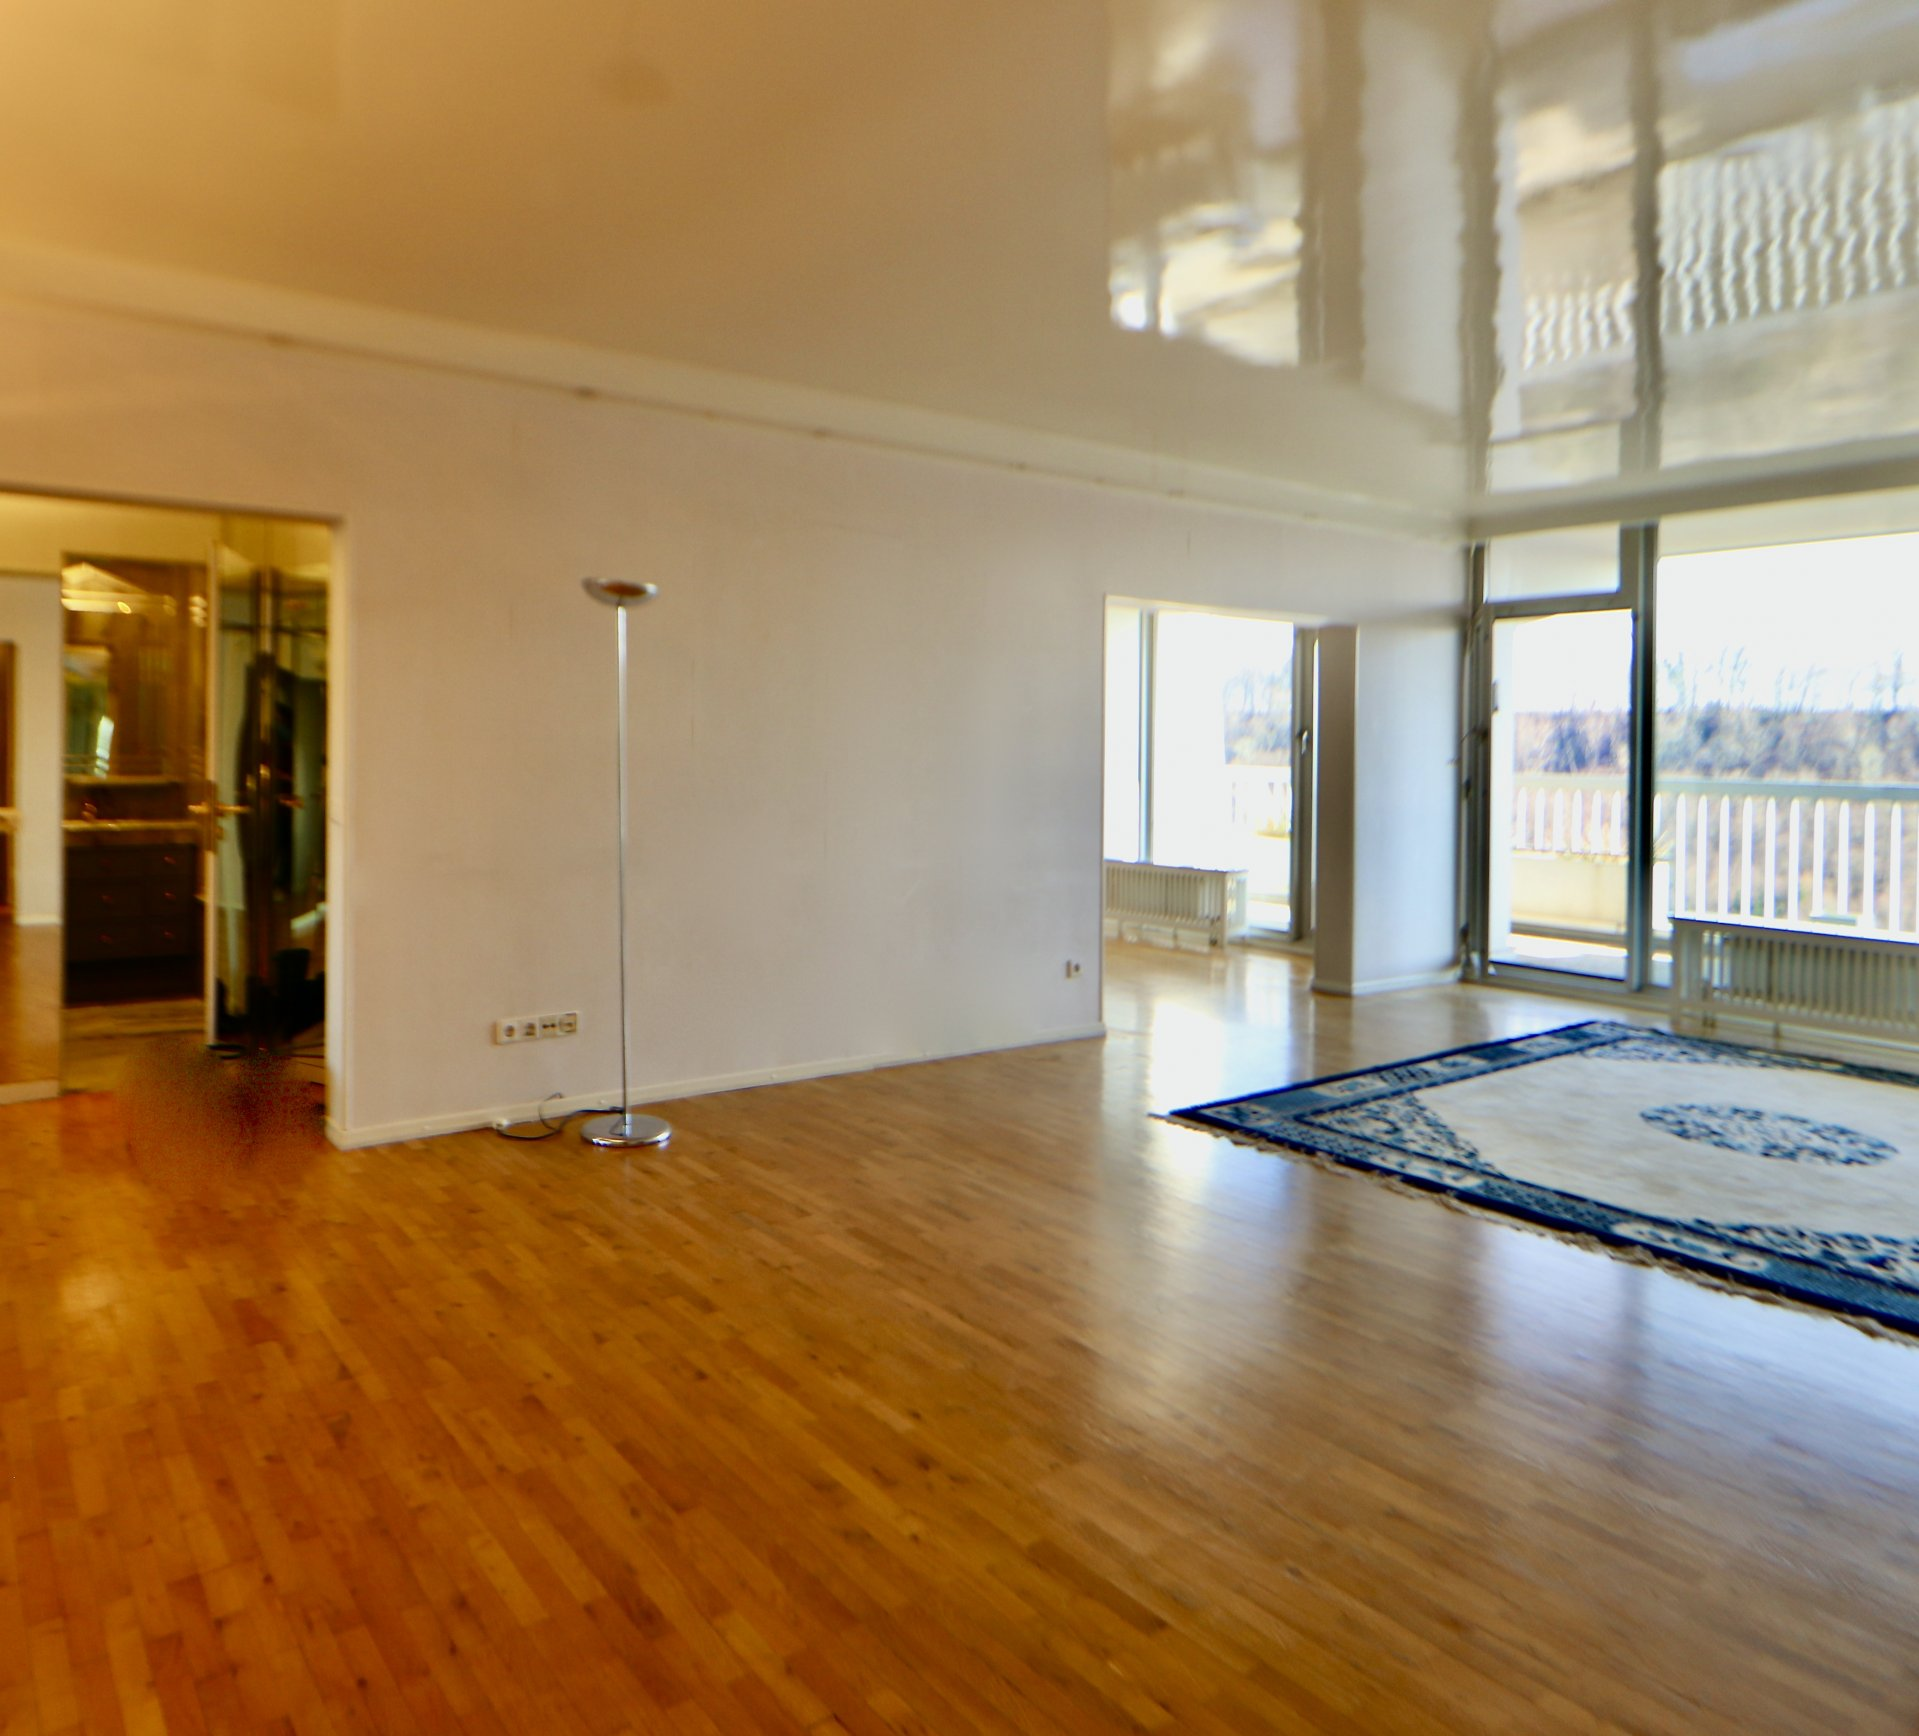 Location Appartement - Luxembourg Dommeldange - Luxembourg